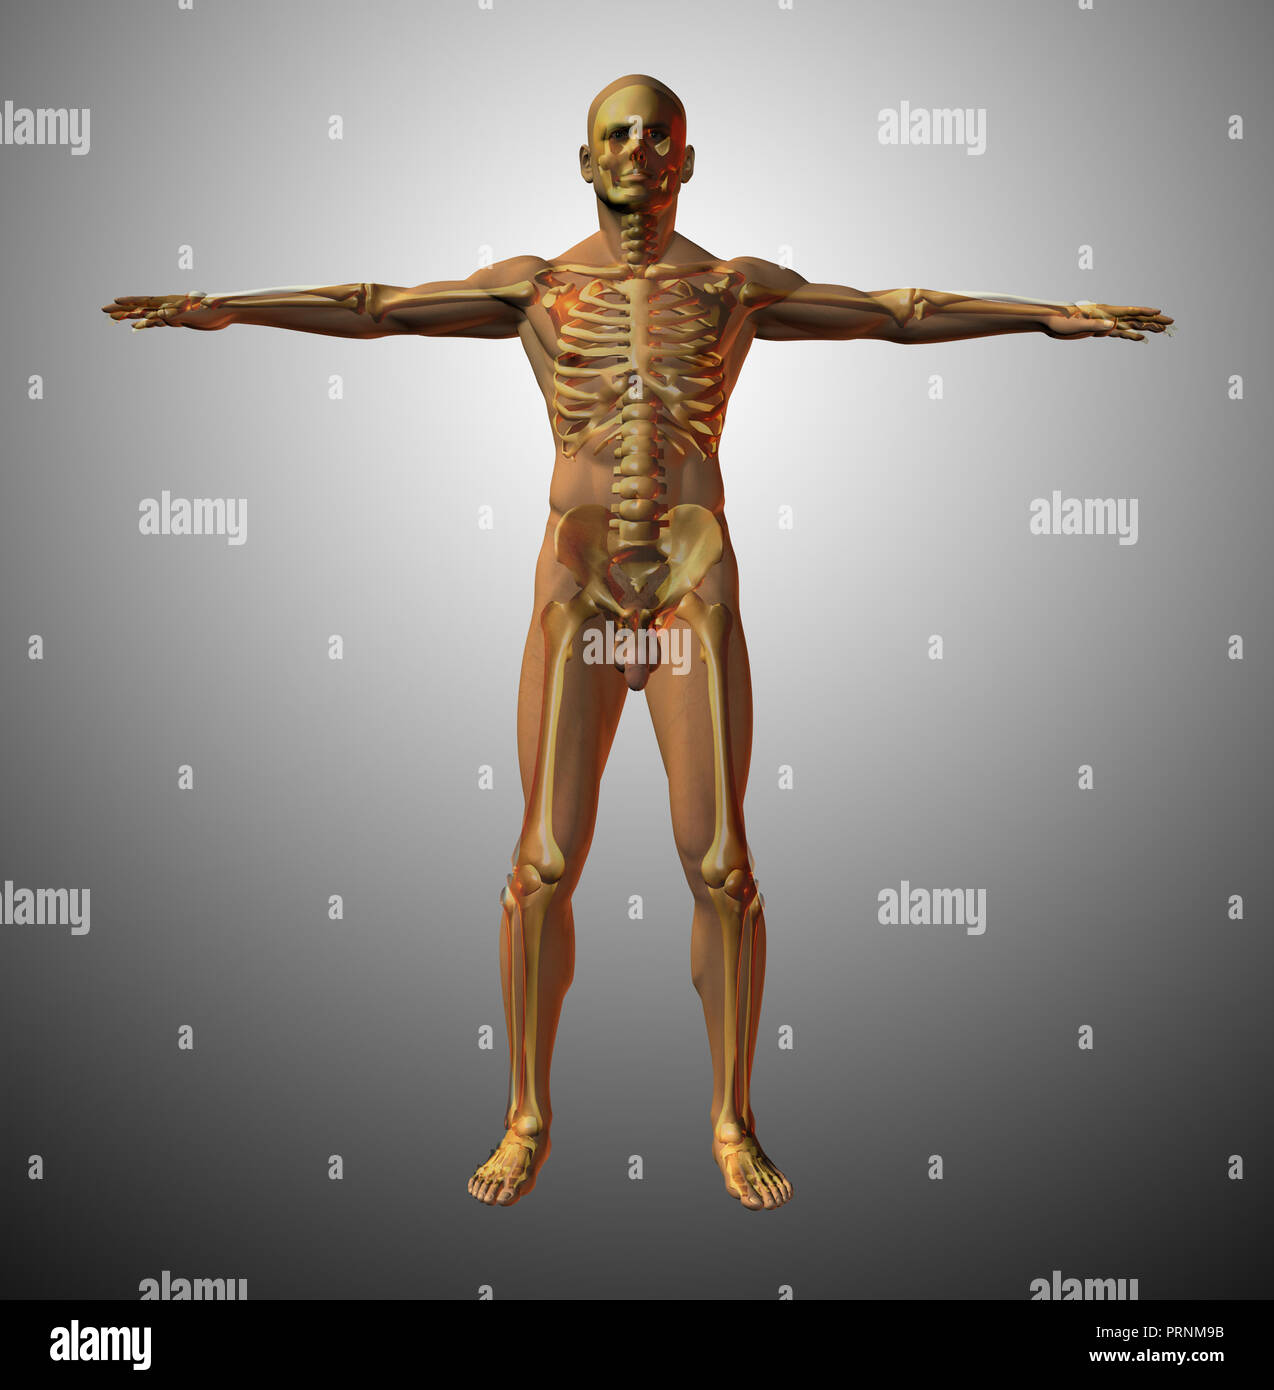 Human Body Anatomy Organs Full Figure Stock Photos Diagram Adult Male Anatomical Model 3d Rendering Image